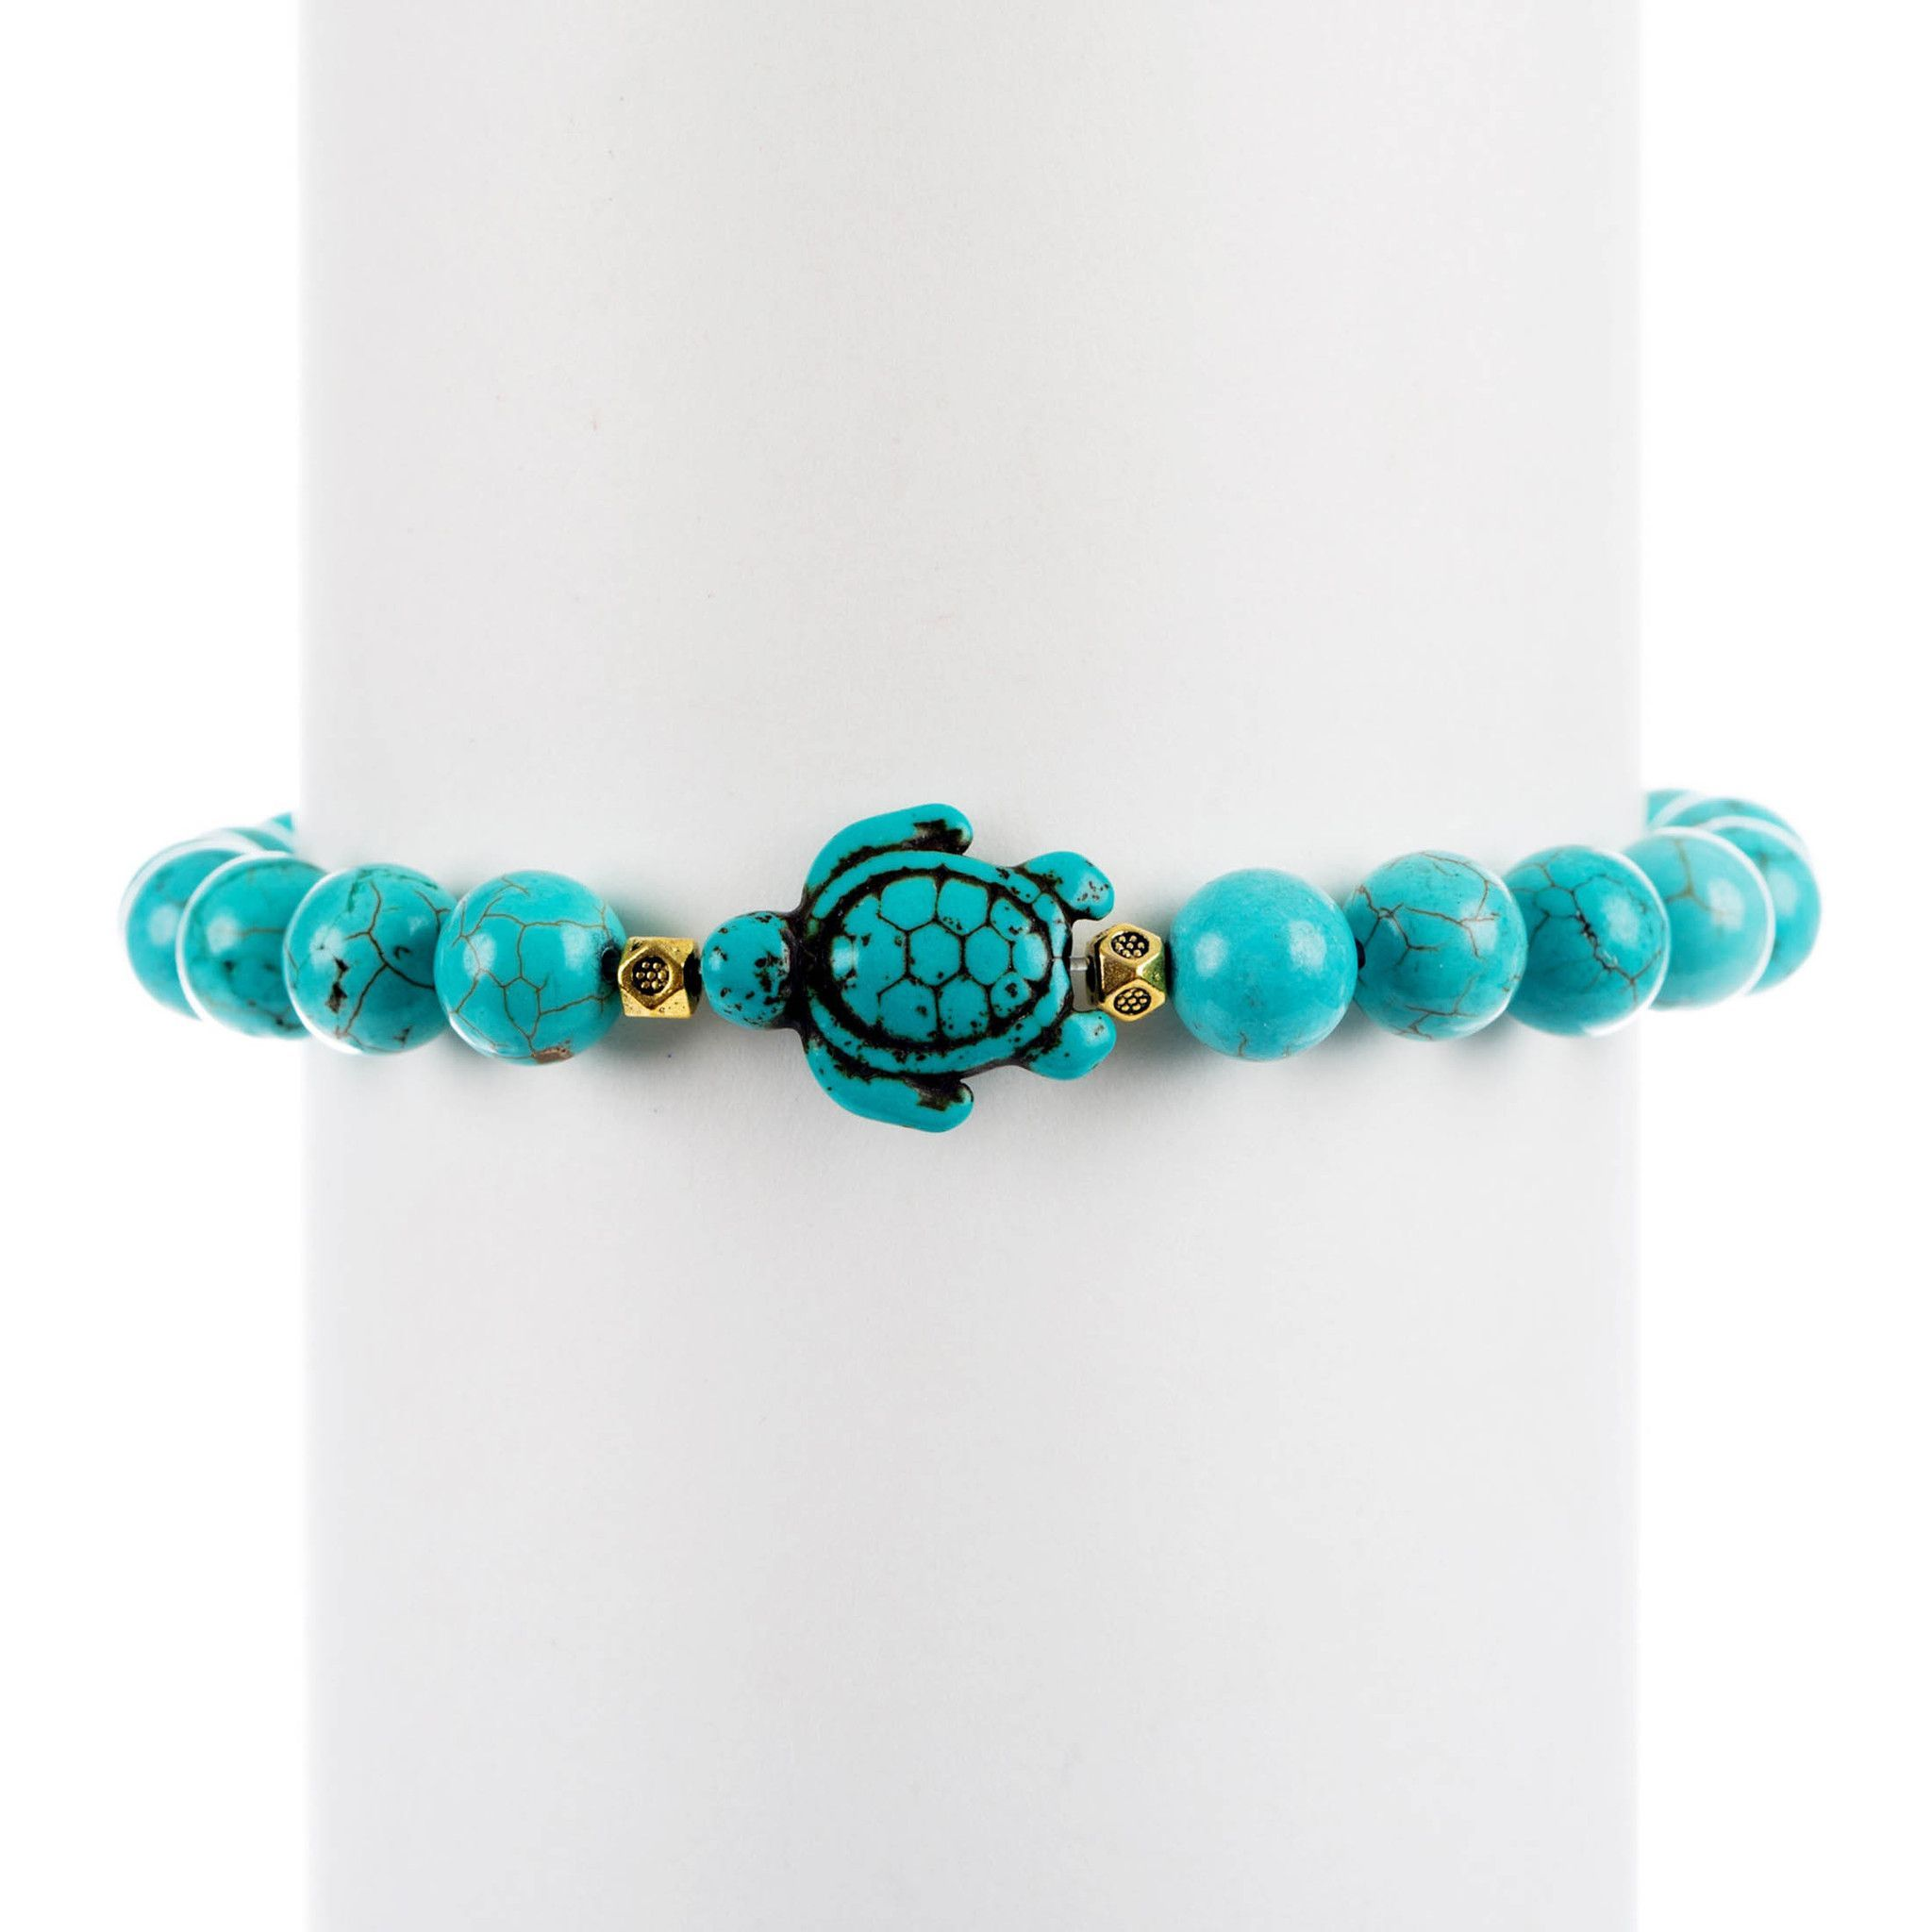 products sea conservancy the bracelets bracelet turtle divinityla